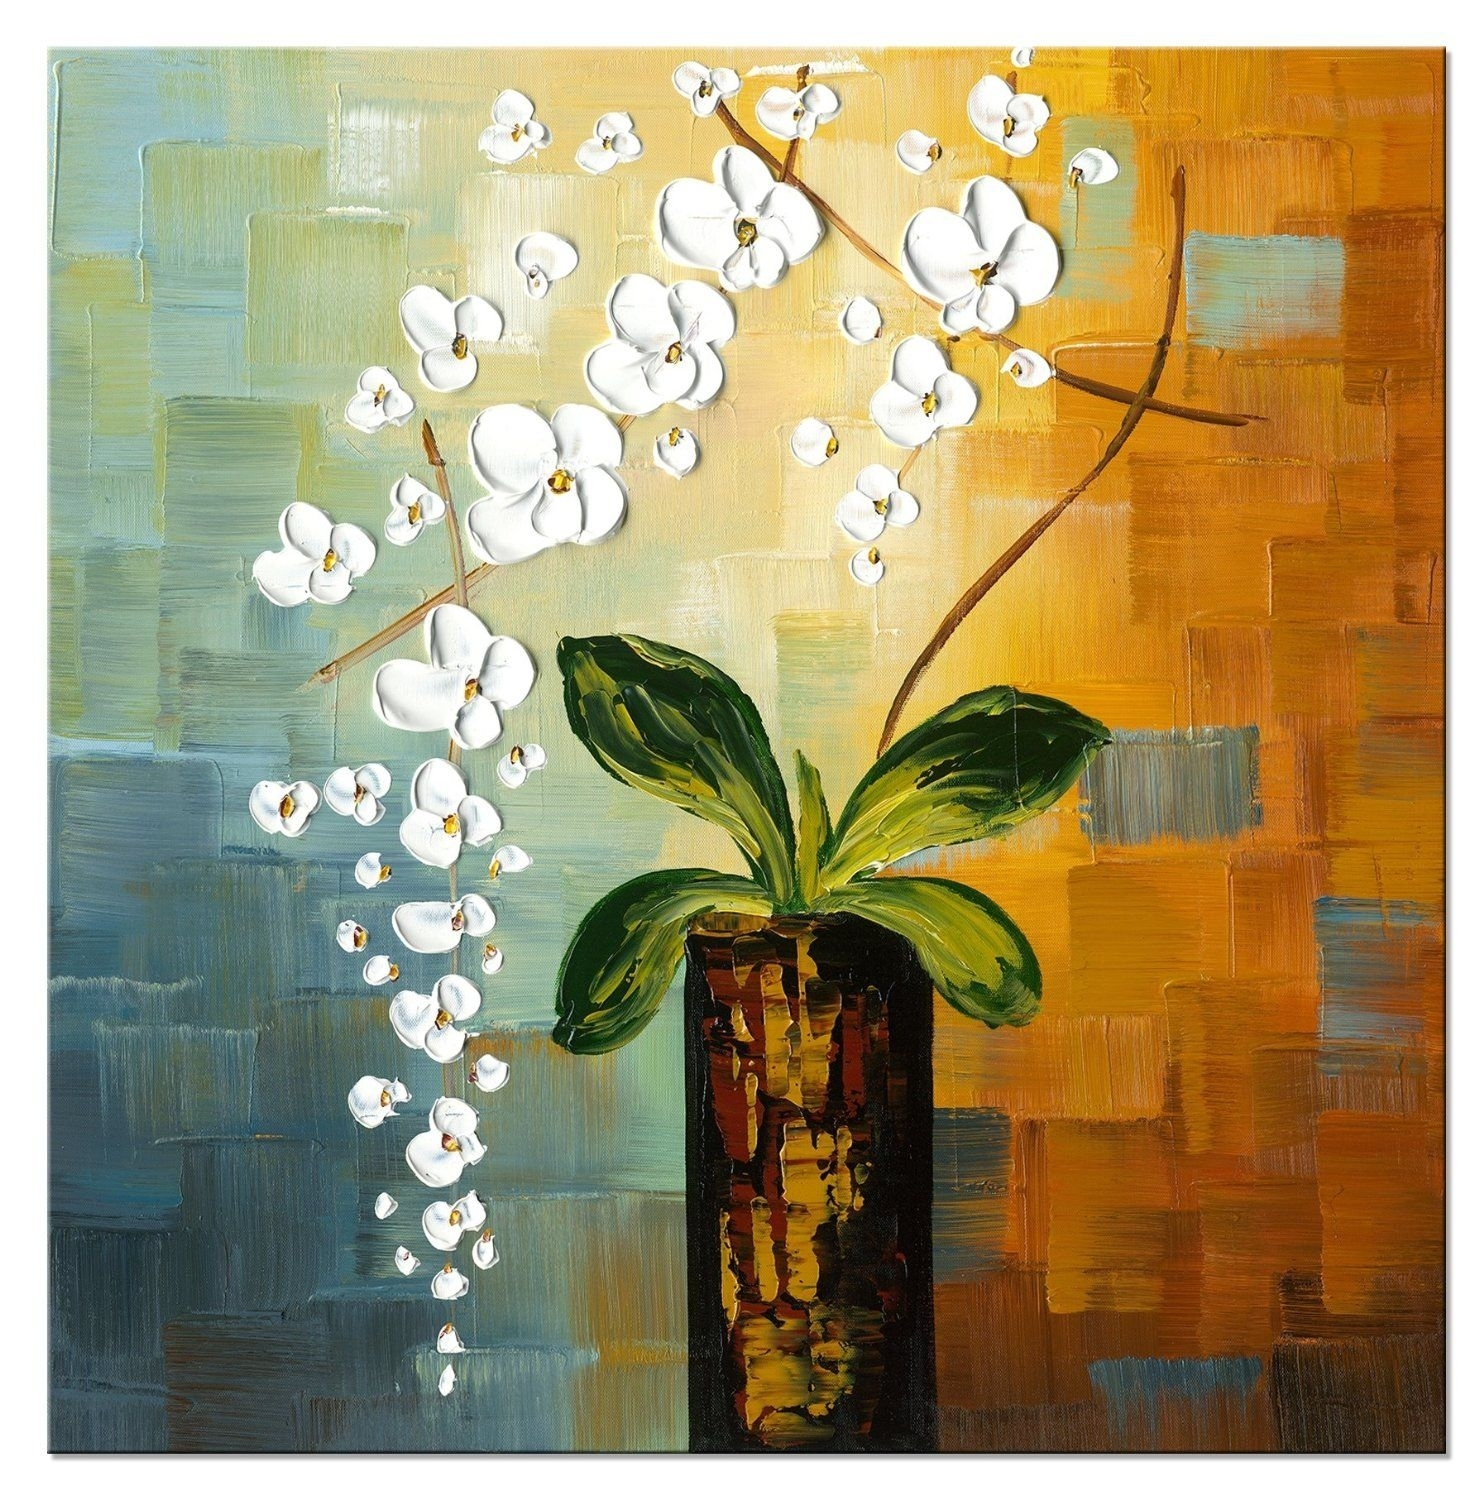 Displaying Gallery of Abstract Floral Canvas Wall Art (View 12 of 20 ...